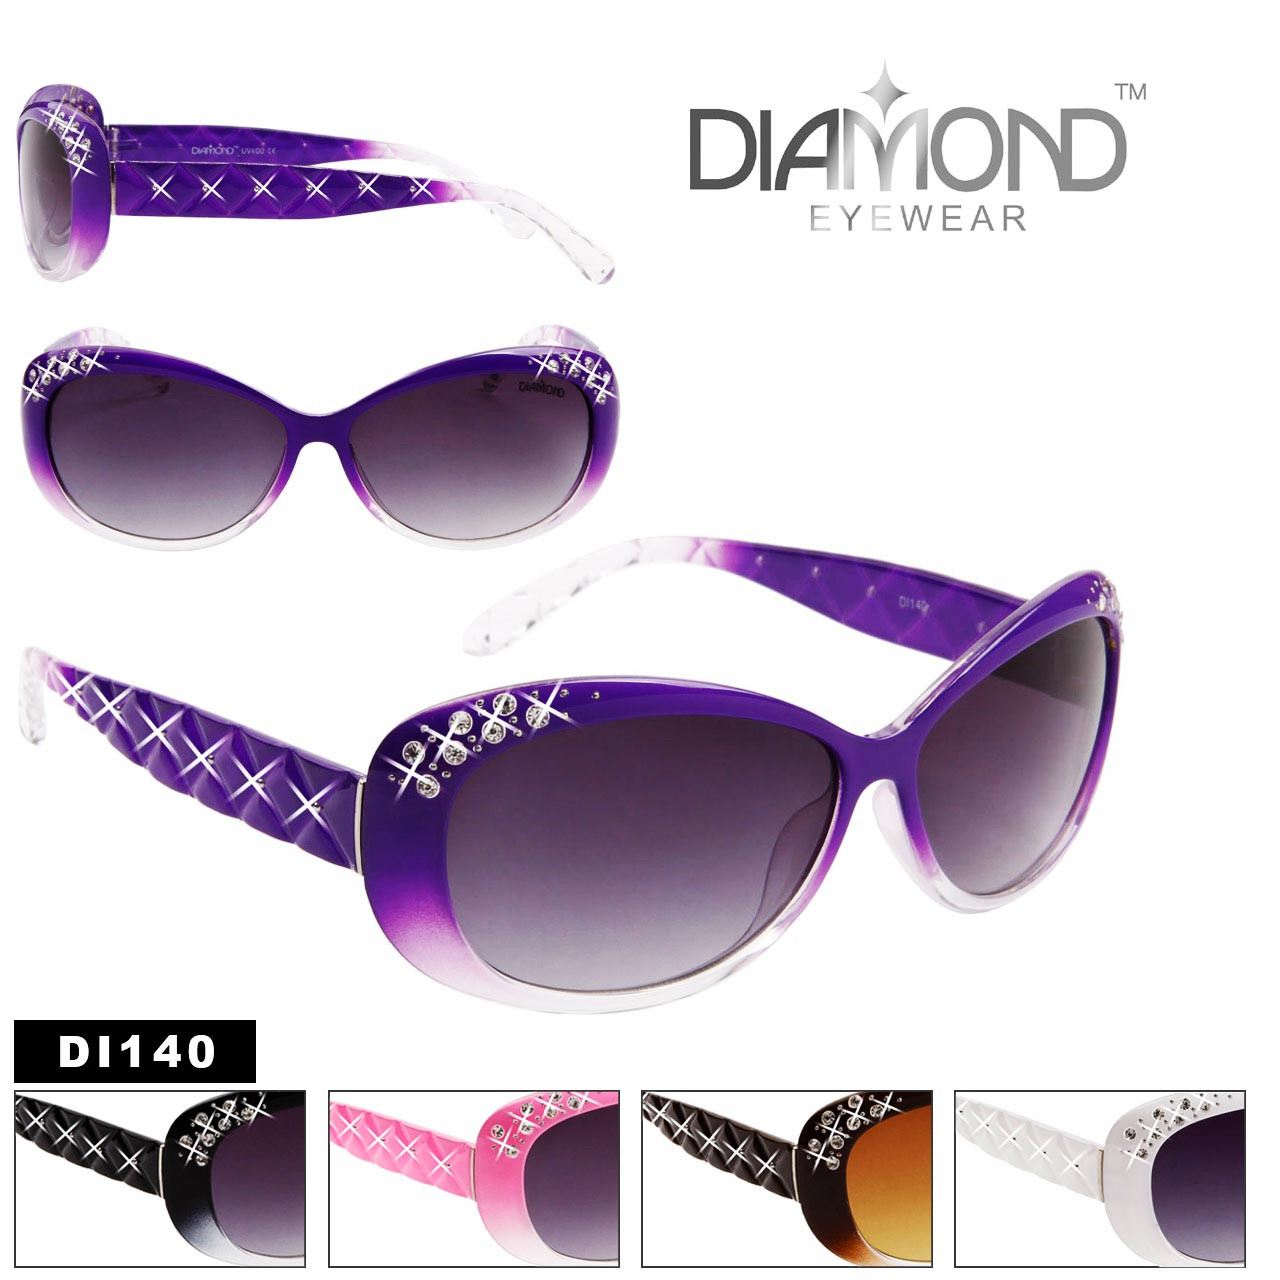 Diamond™ Eyewear Wholesale Sunglasses DI140